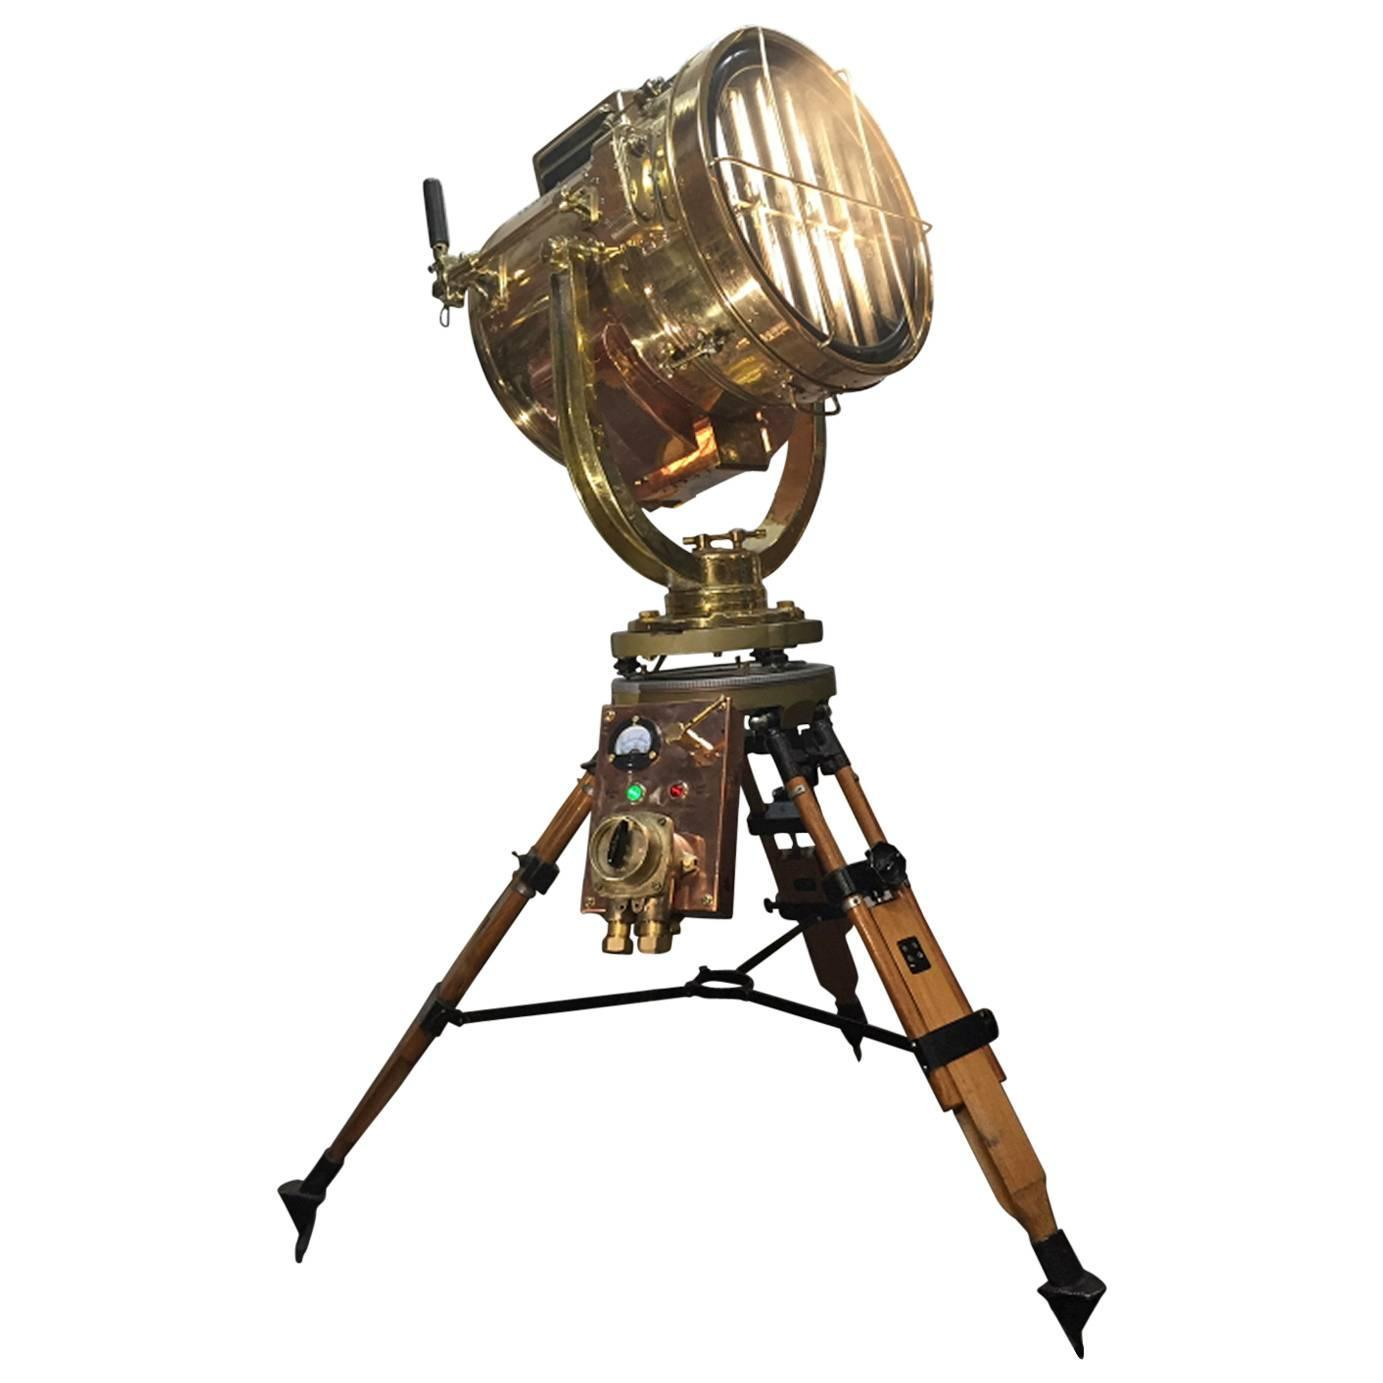 asian floor lamps   for sale at stdibs - th century copper amp brass signalling floor lamp and militarygyroscope tripod